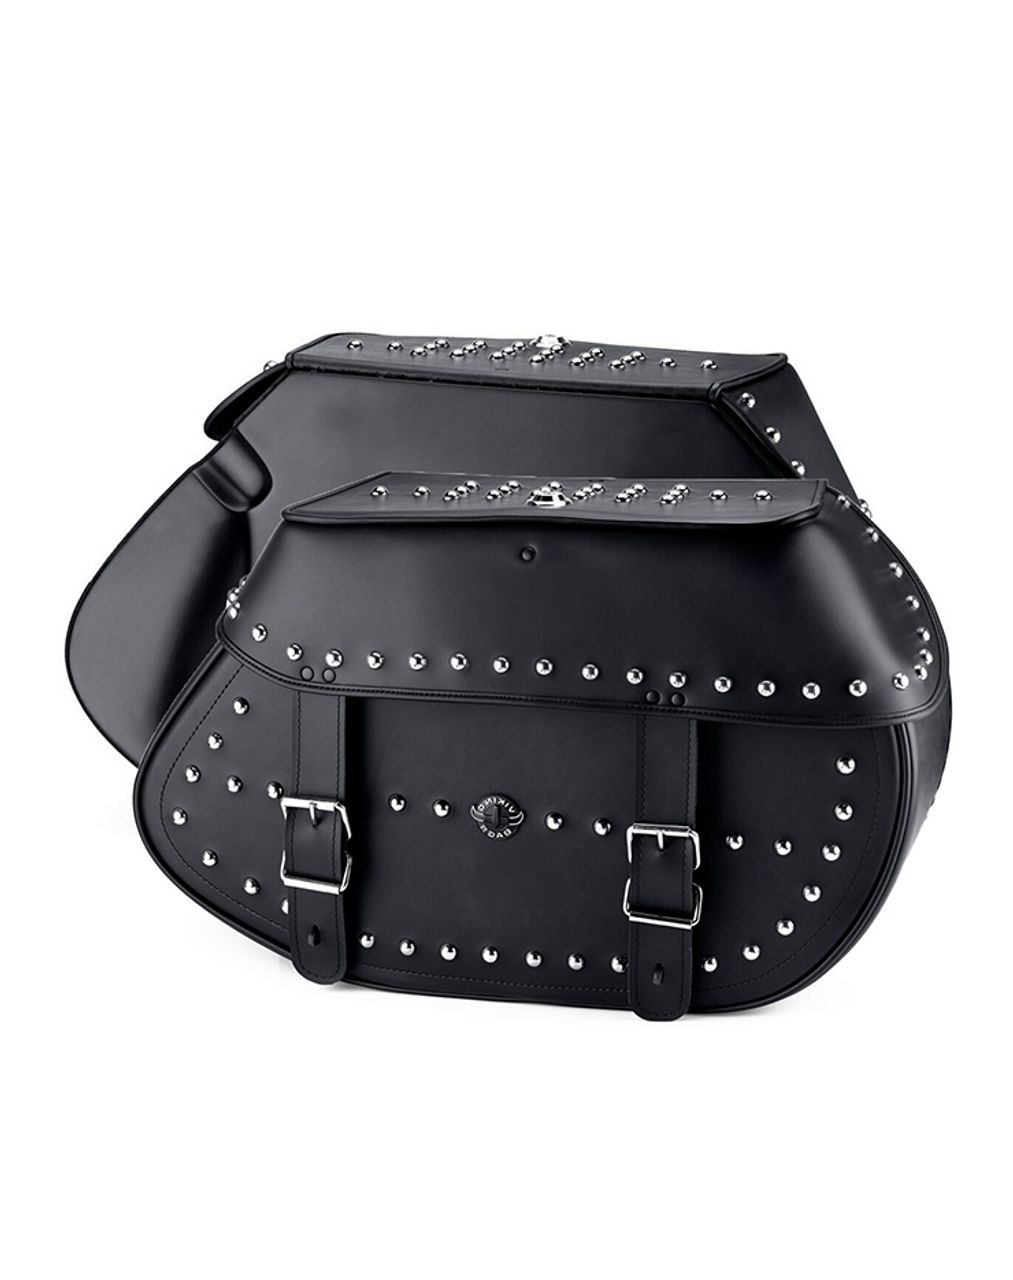 Viking Specific Studded Saddlebags For Harley Softail Street Bob Both Bags View